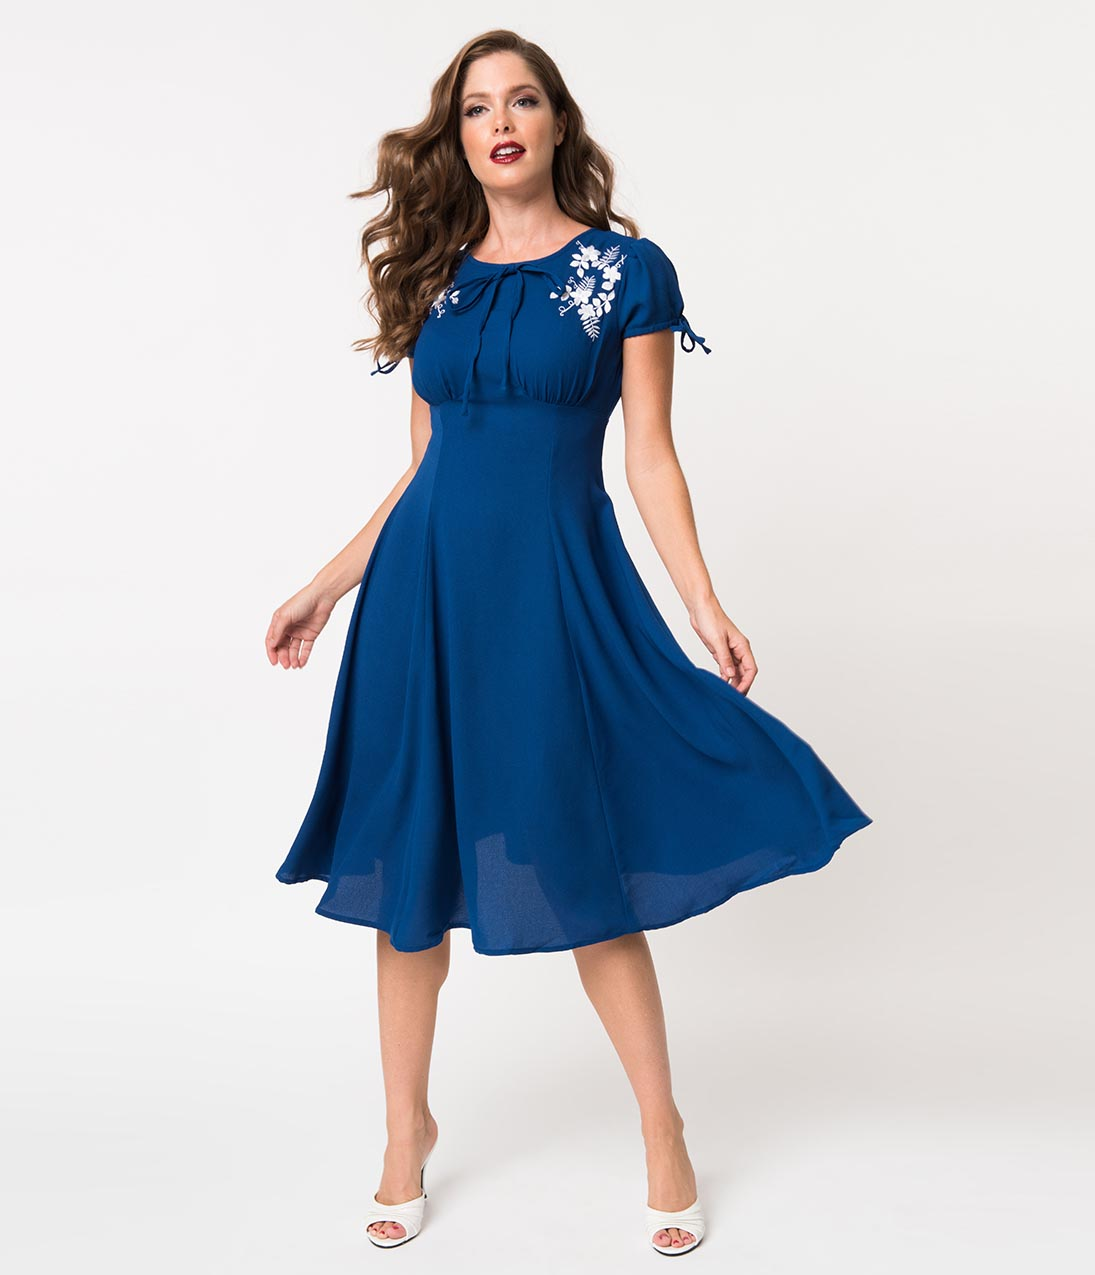 Swing Dance Dresses | Lindy Hop Dresses & Clothing 1940S Style Royal Blue Crepe  White Embroidered Floral Ava Swing Dress $78.00 AT vintagedancer.com